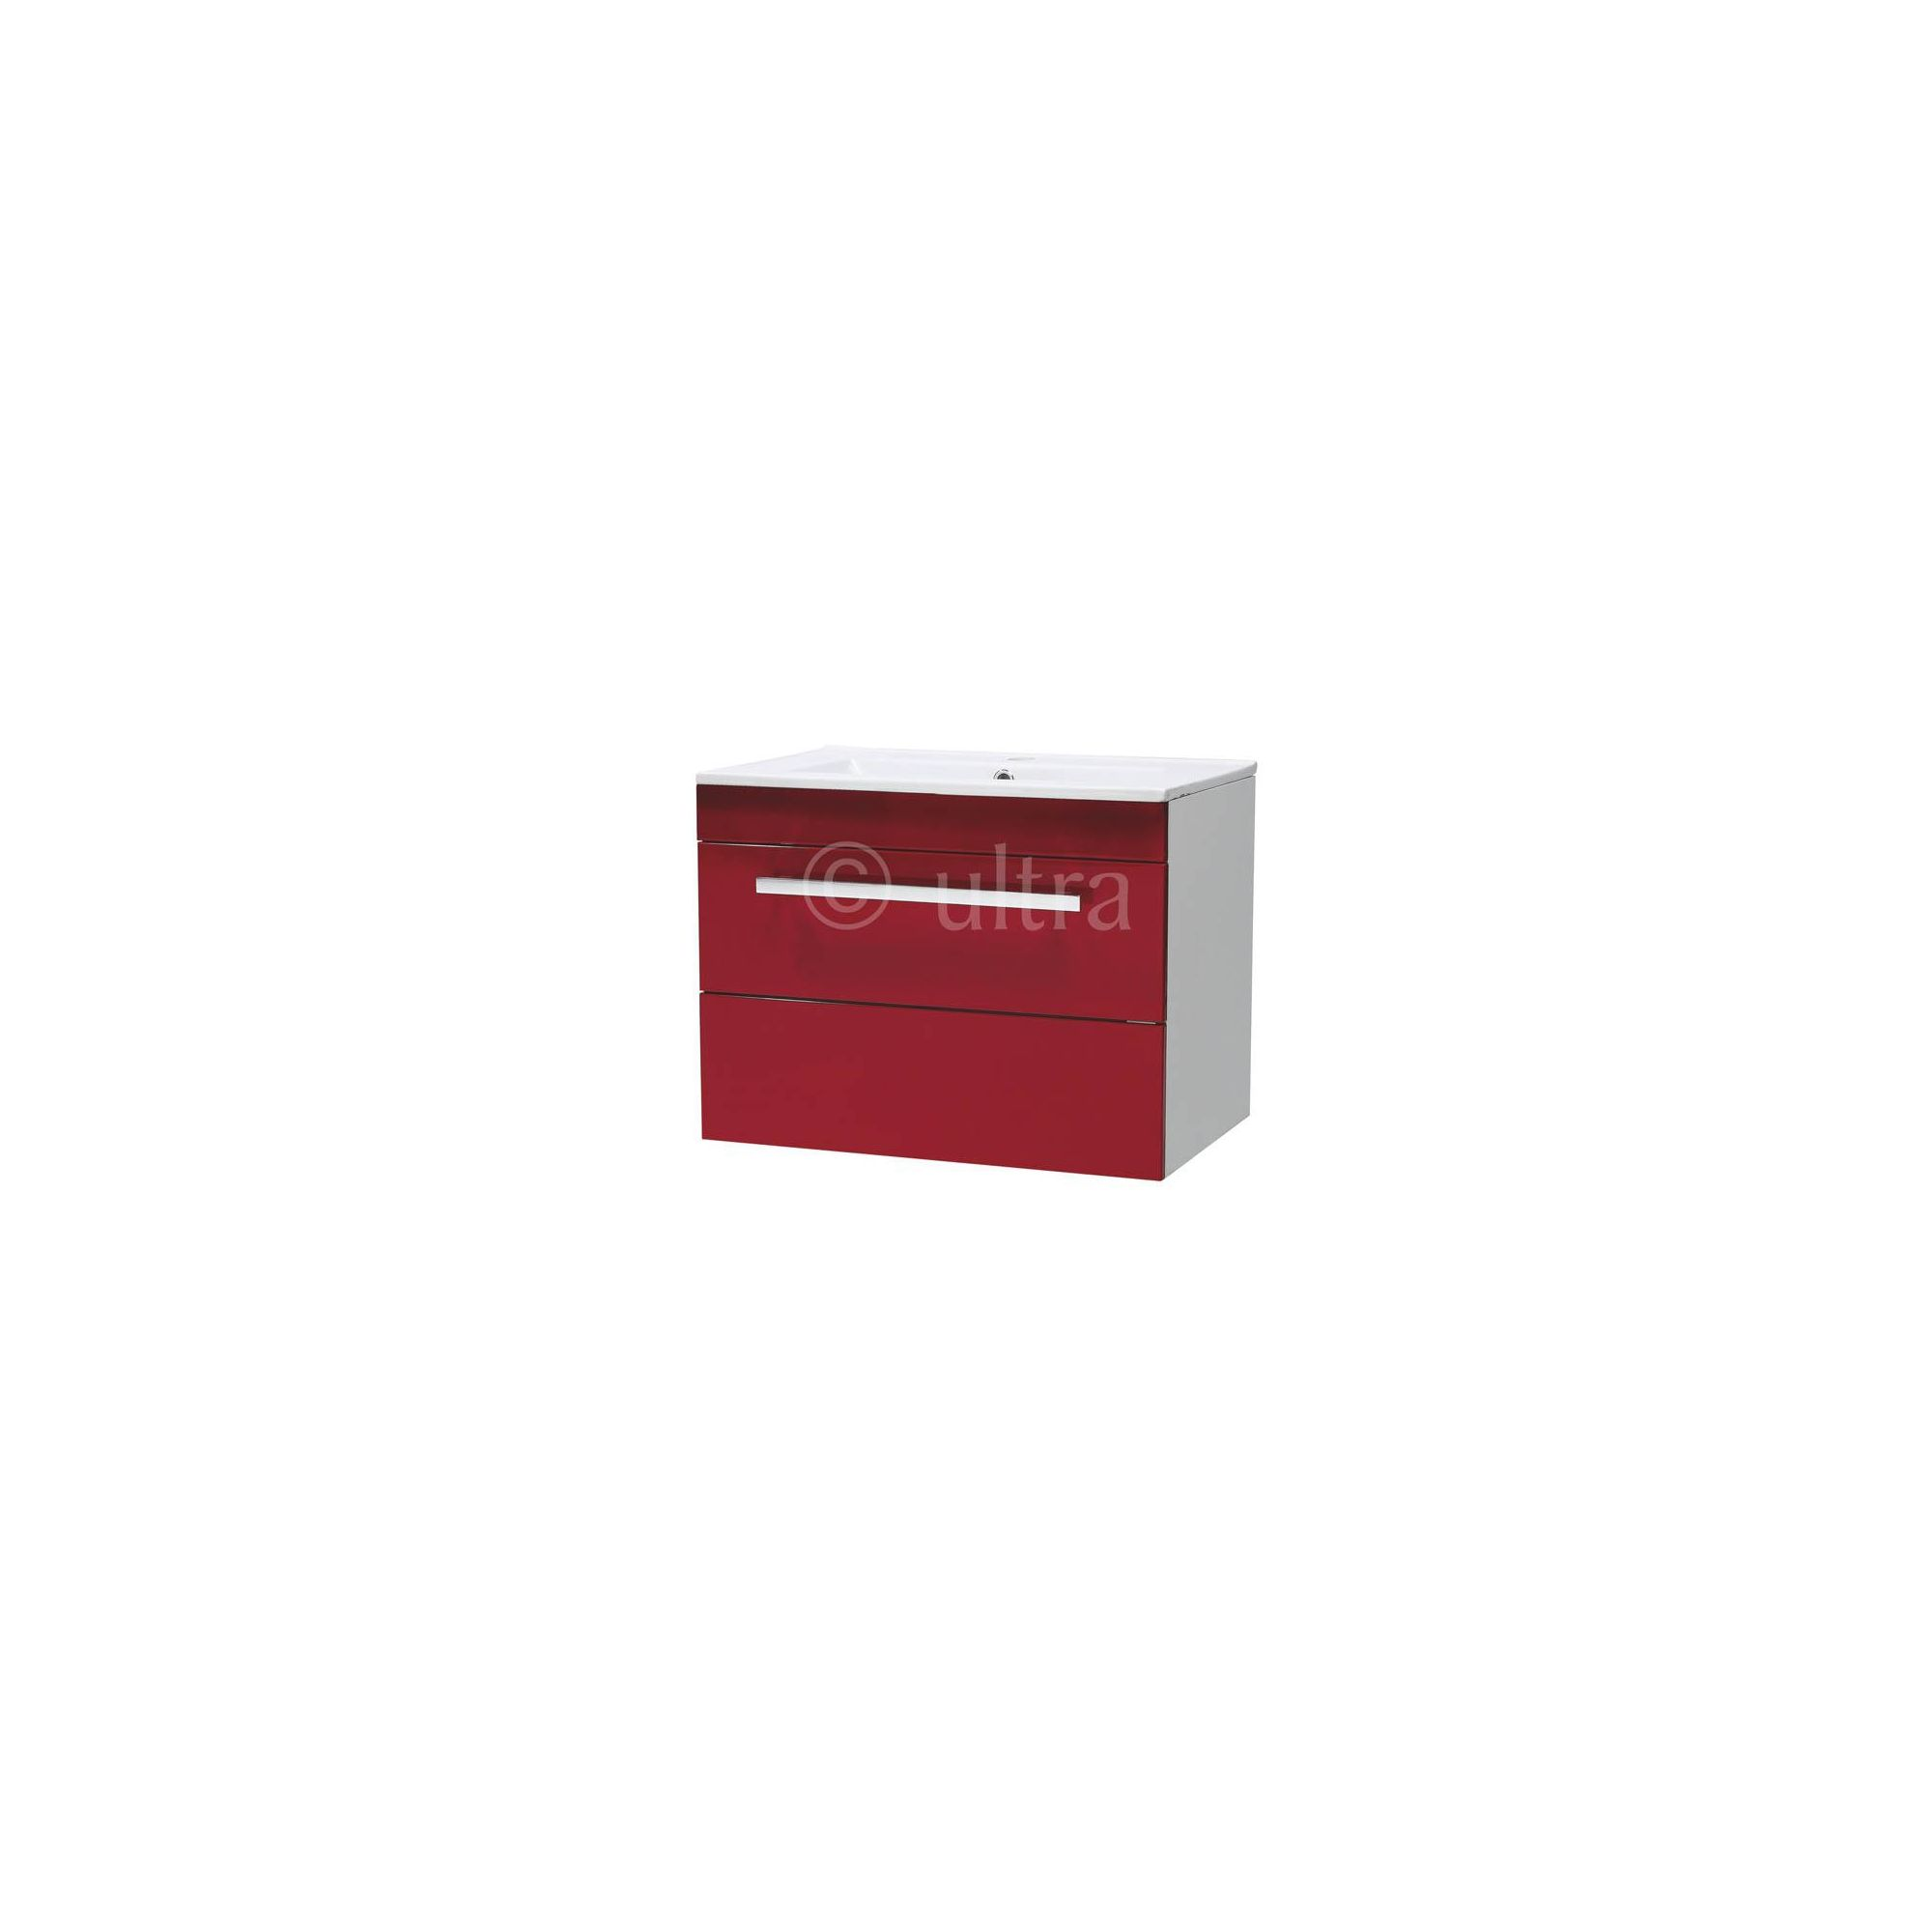 Ultra Design Red Wall Mounted Unit with Ceramic Basin 450mm Height x 600mm Width x 400mm Deep